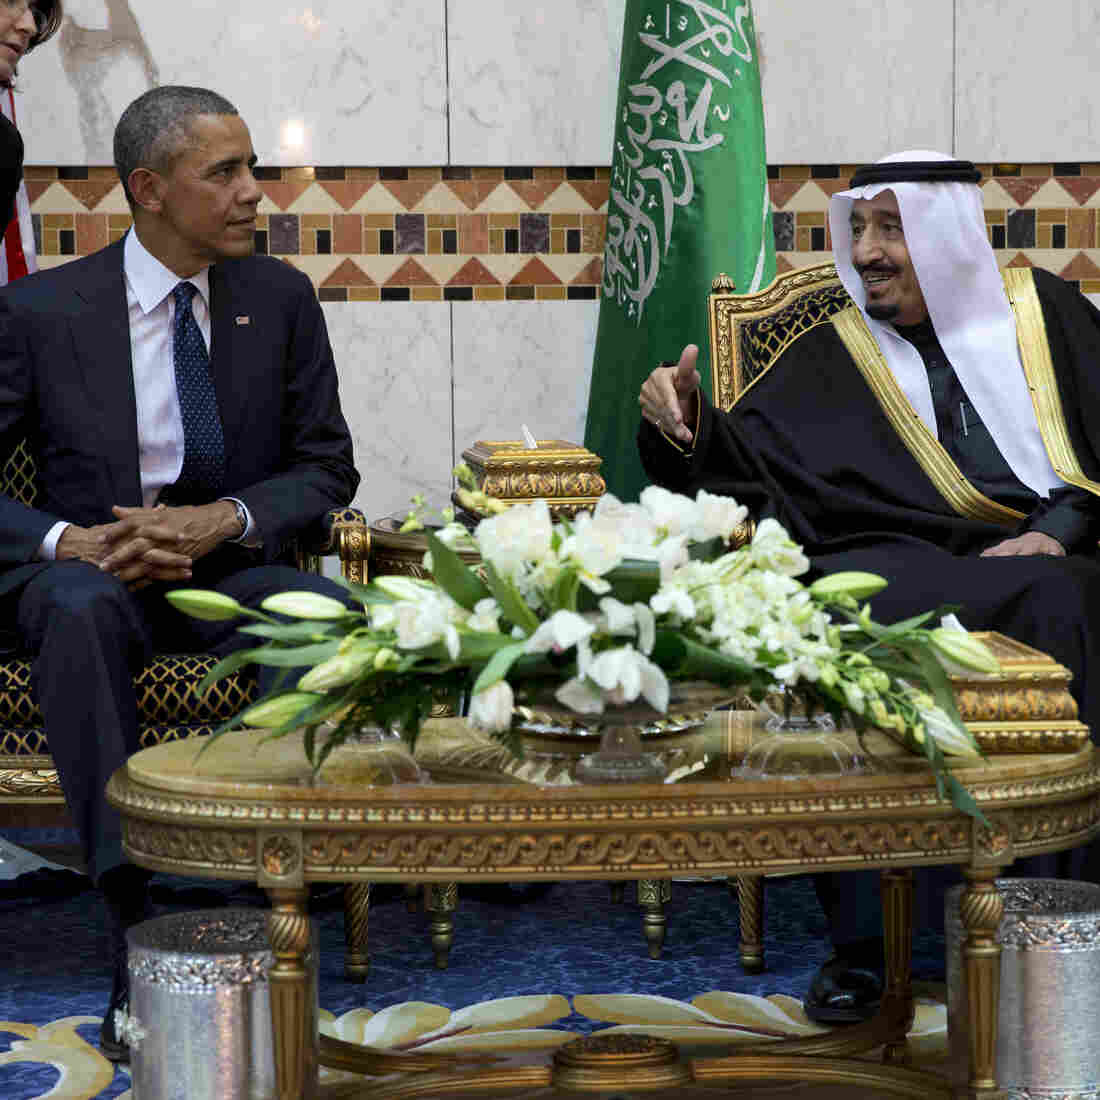 Under King Salman, Saudi Arabia Takes A Harder Line With Iran